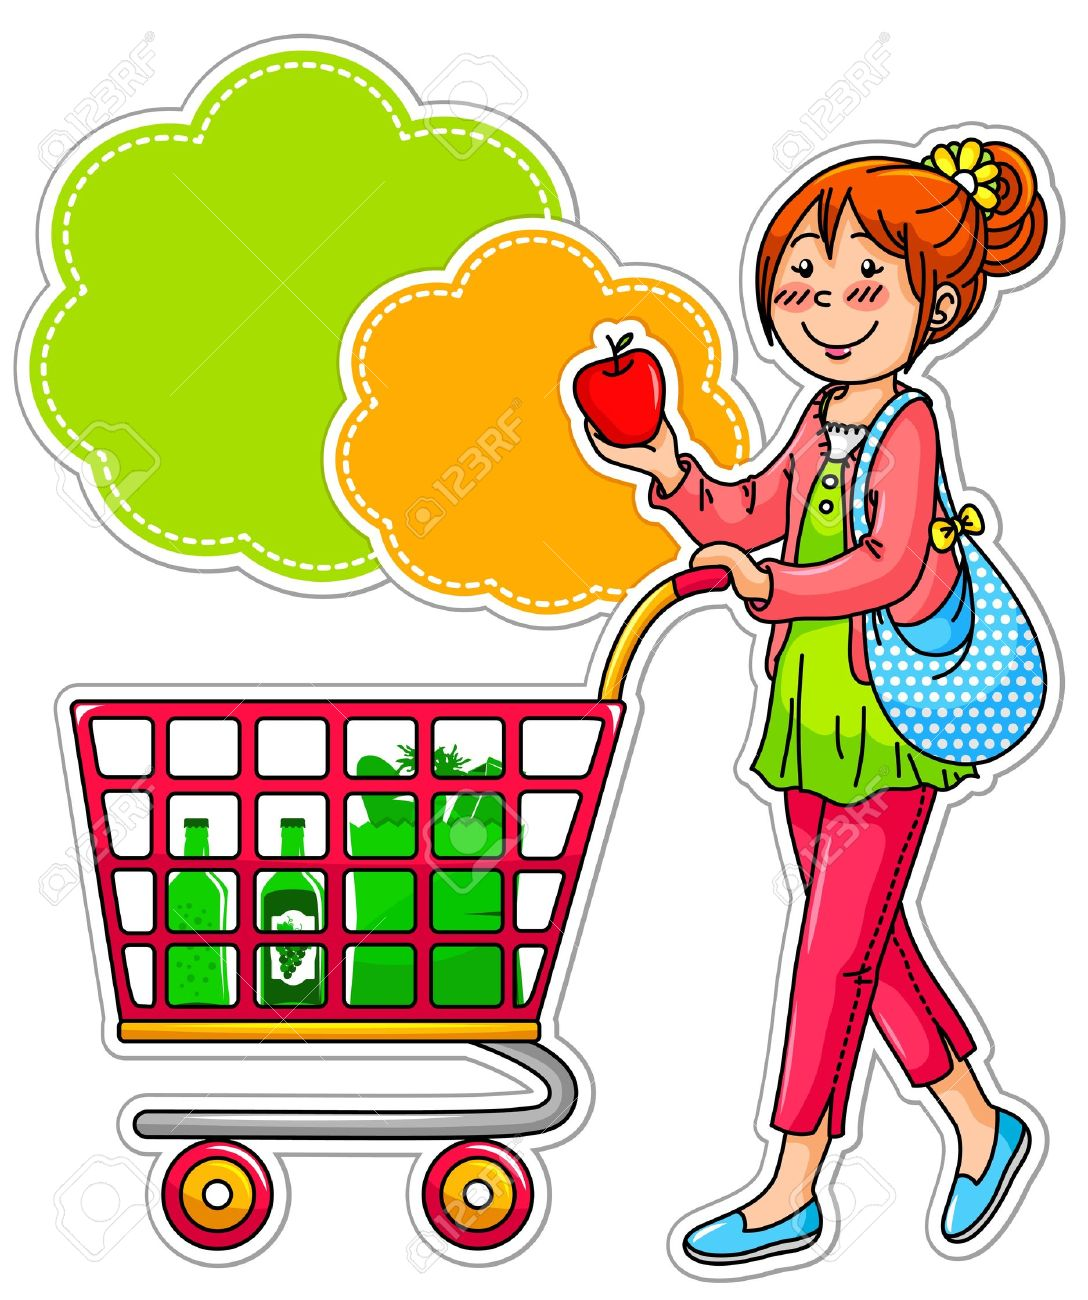 svg download Free grocery cliparts download. Supermarket clipart animated.